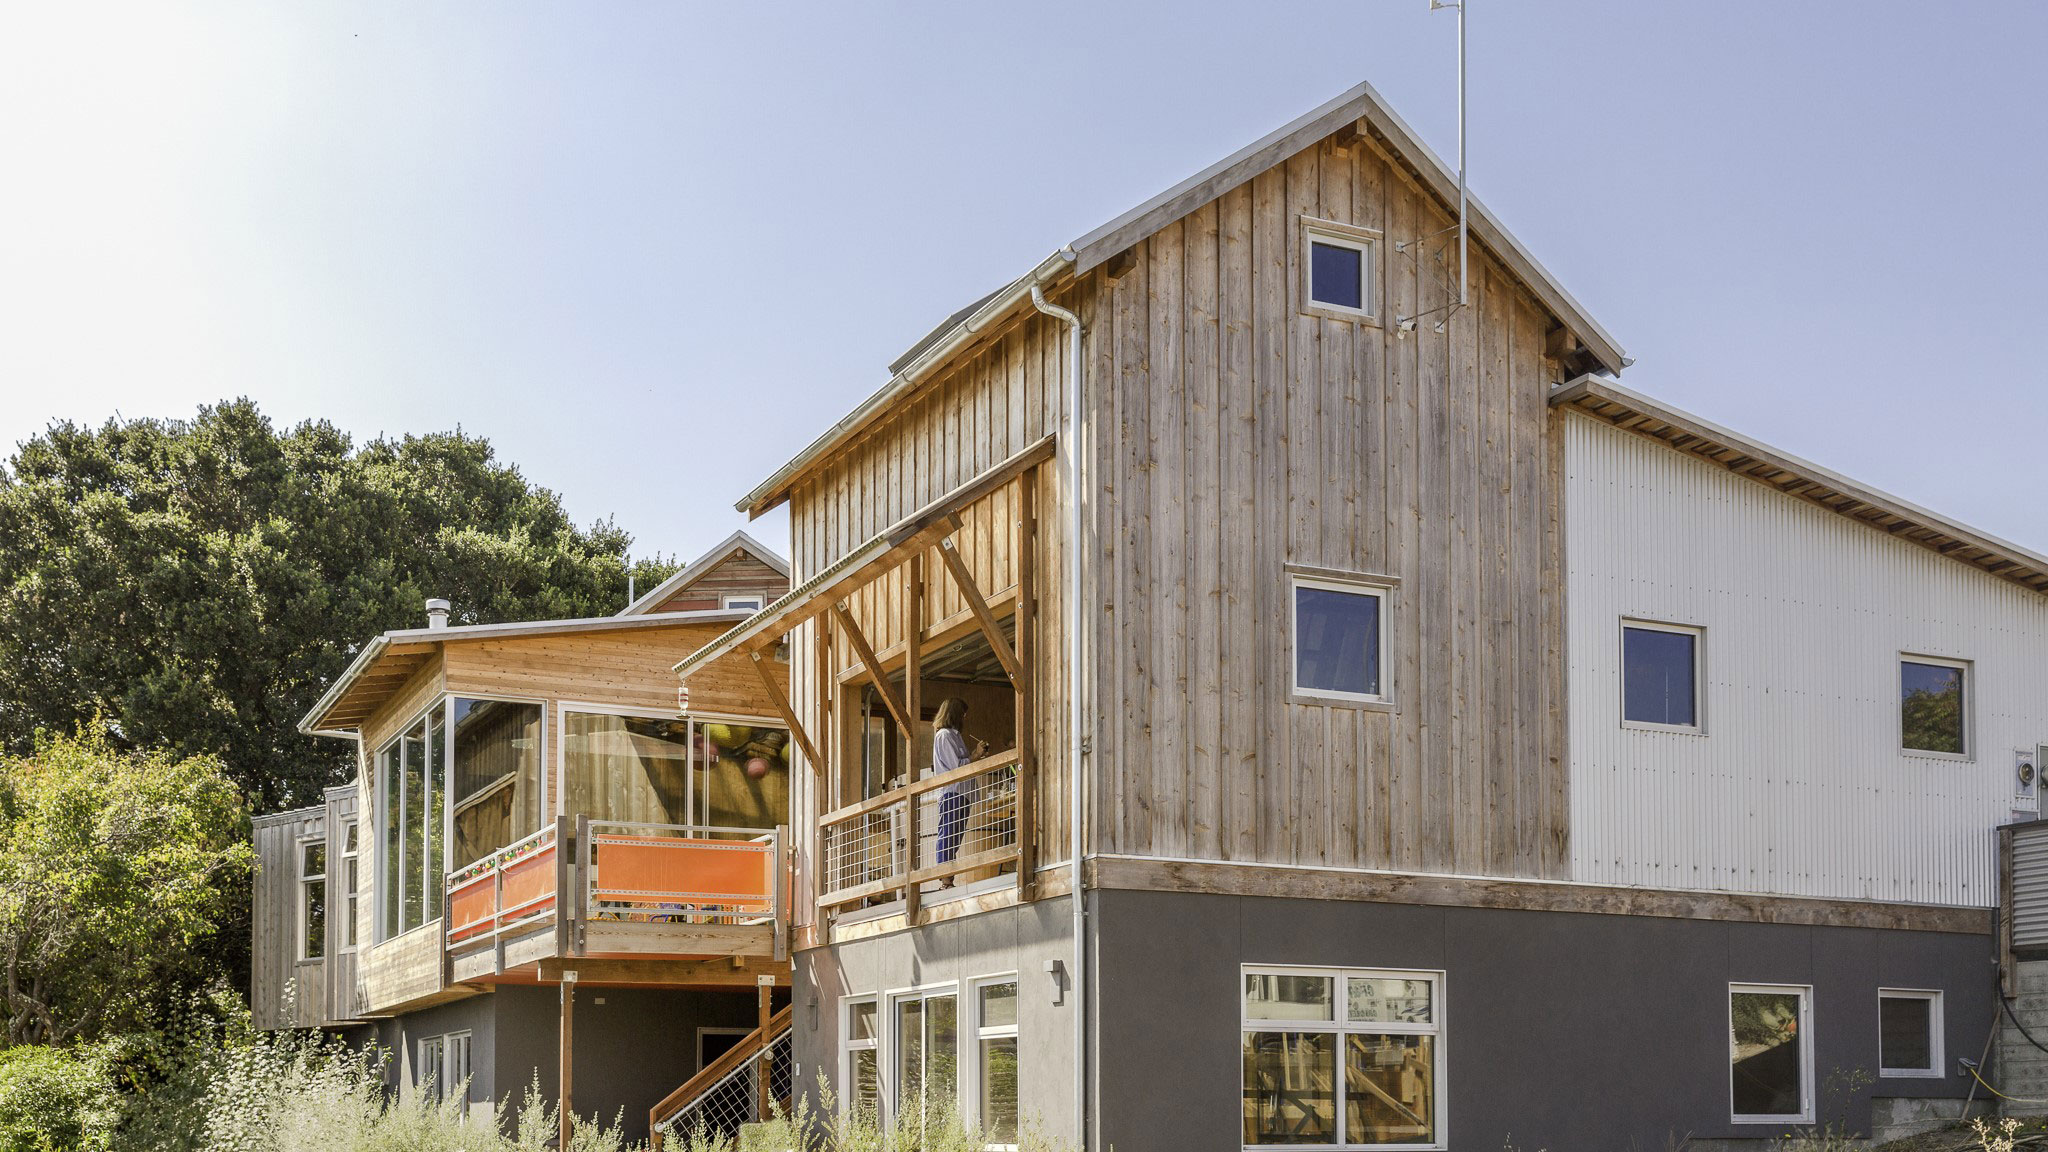 Custom-Home-Sonoma-County-MiJi-New-house-with-simple-agrarian-forms-and-materials